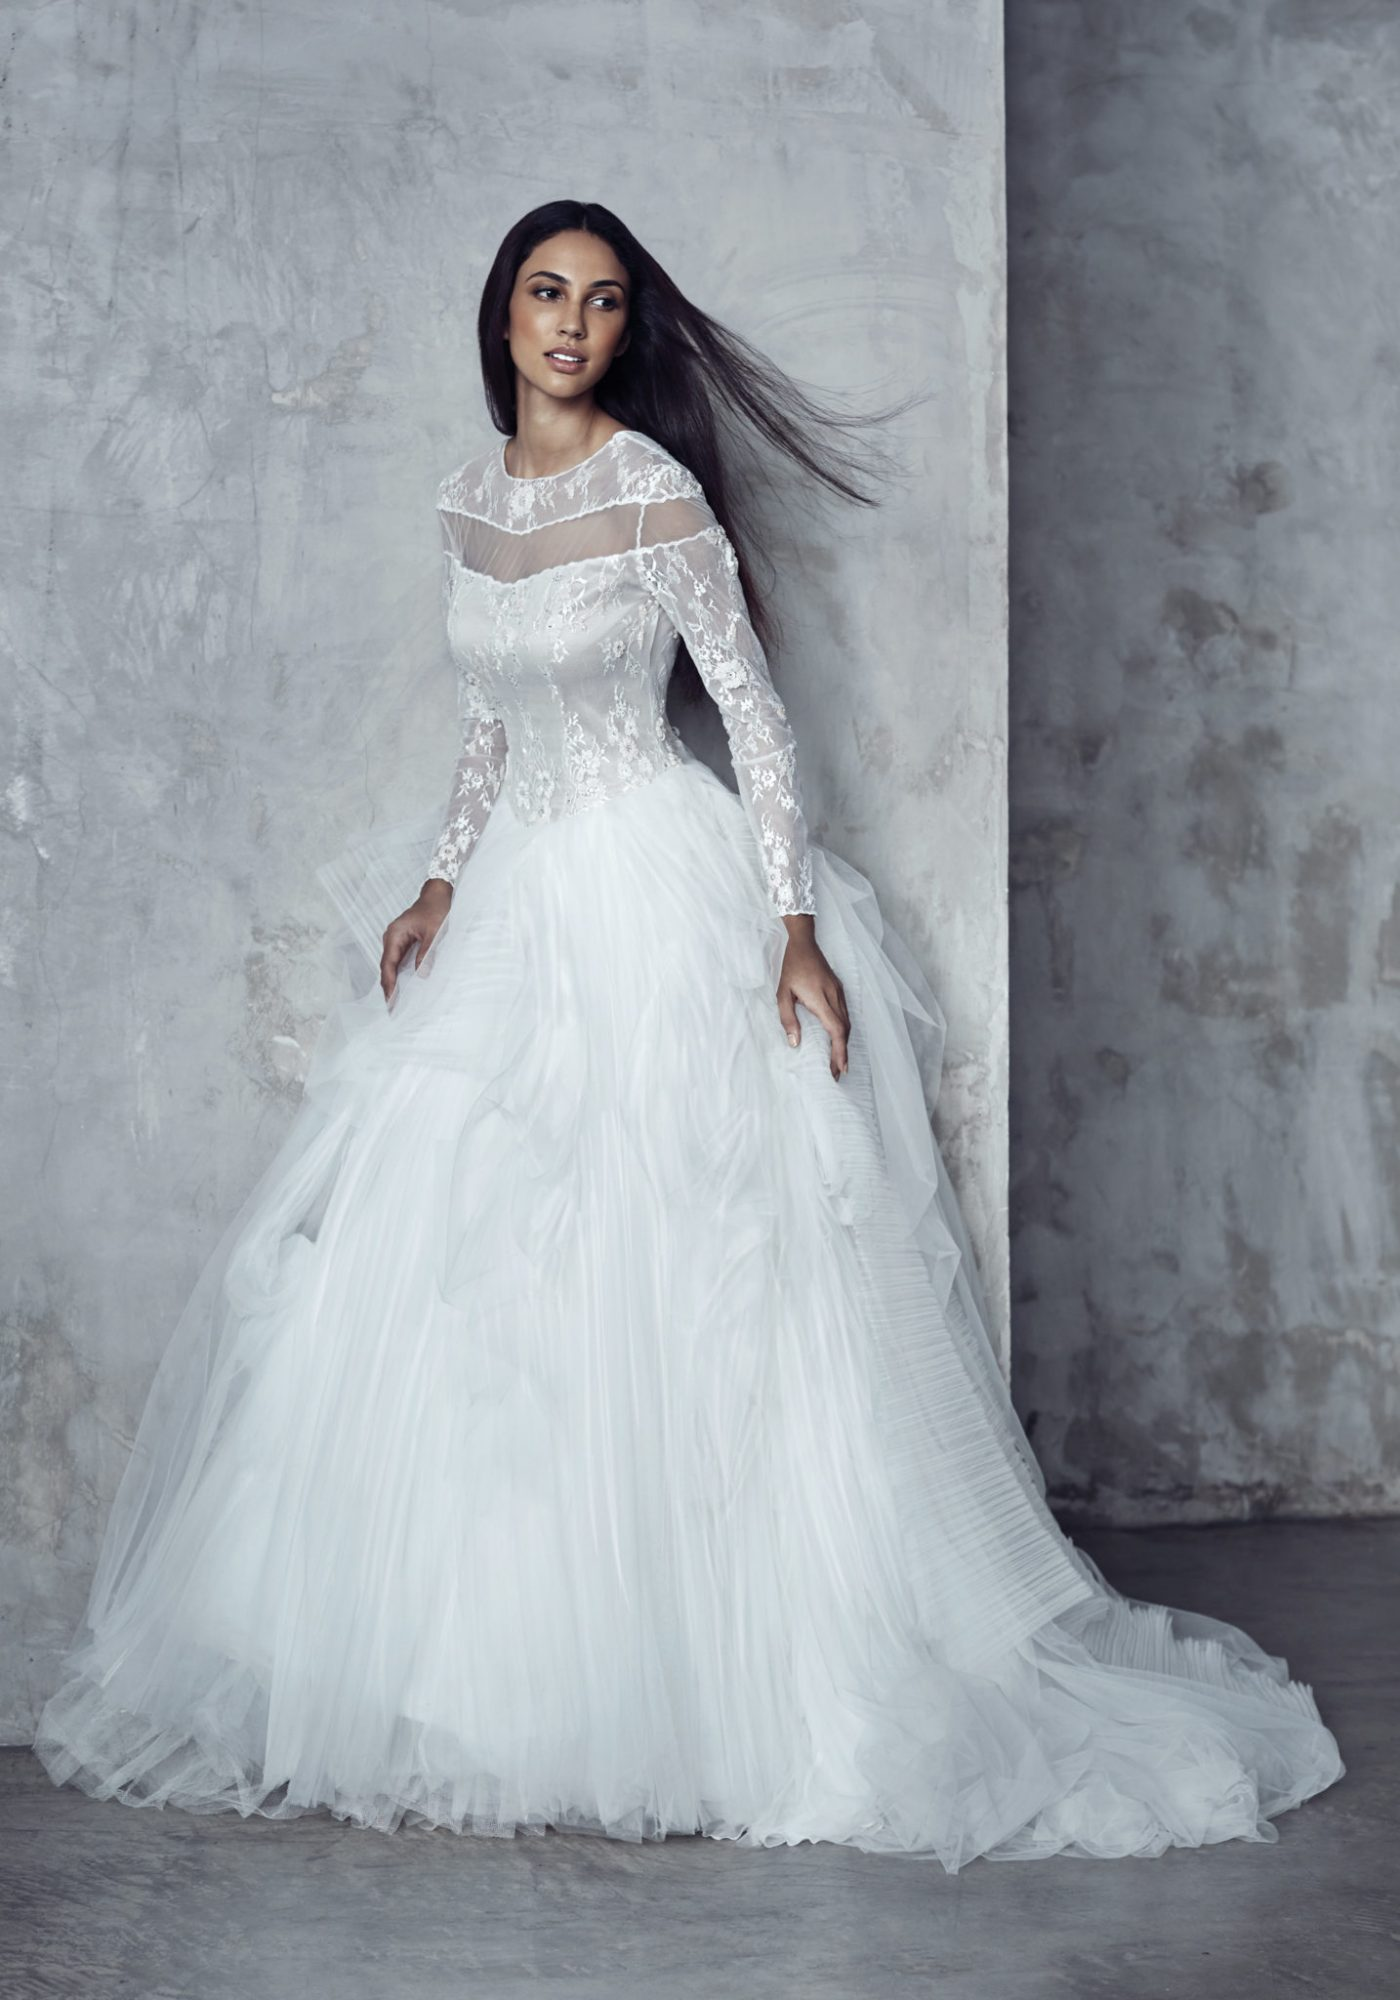 Outstanding Malaysian Bridal Gown Designers | WedElf